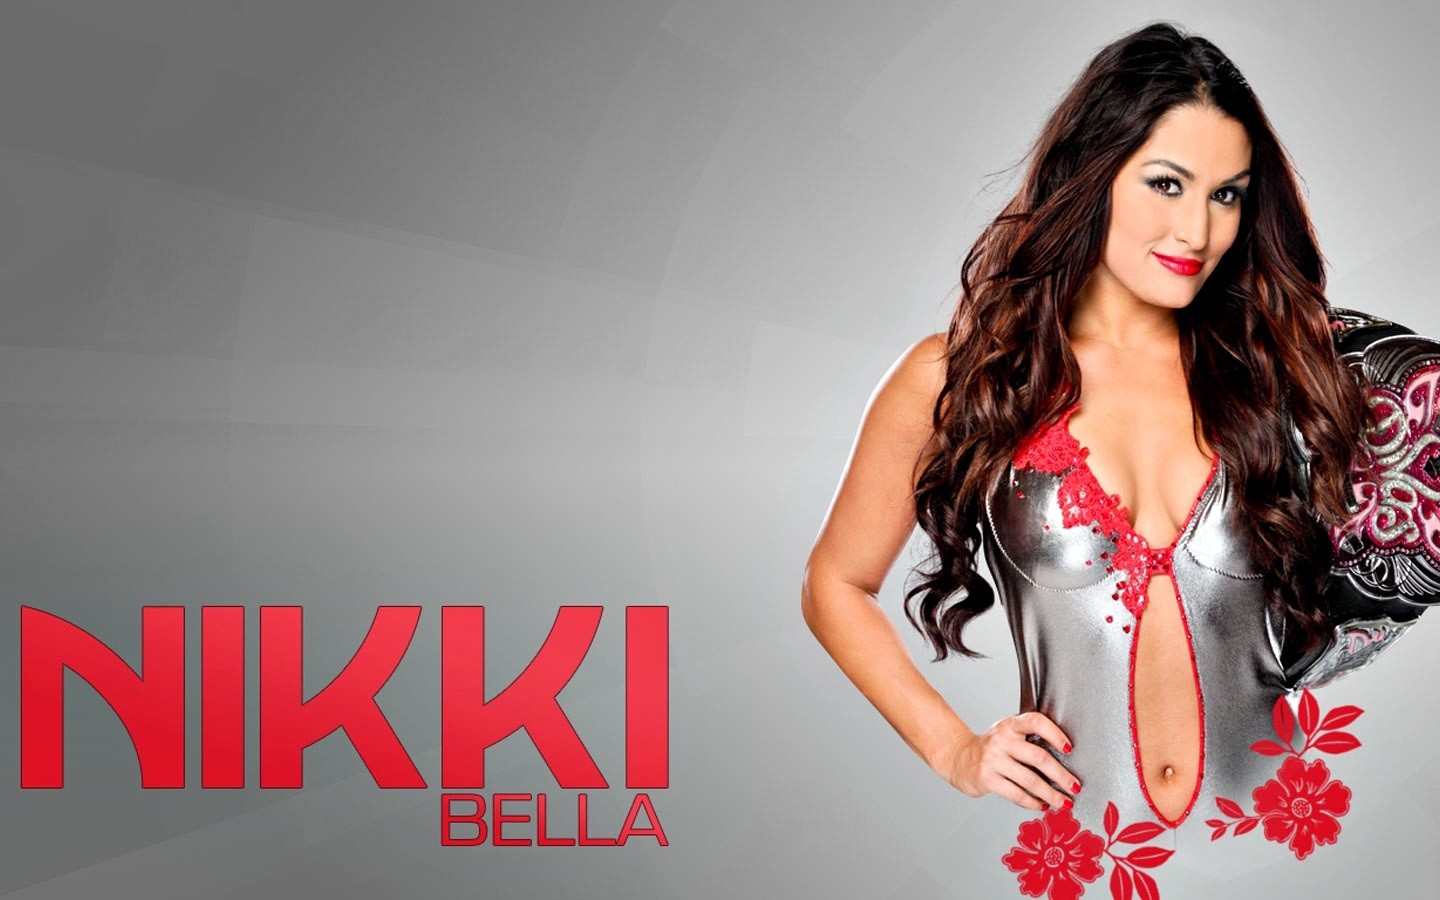 Nikki bella wardrobe malfunction as her top falls down - Wwe divas wallpapers ...